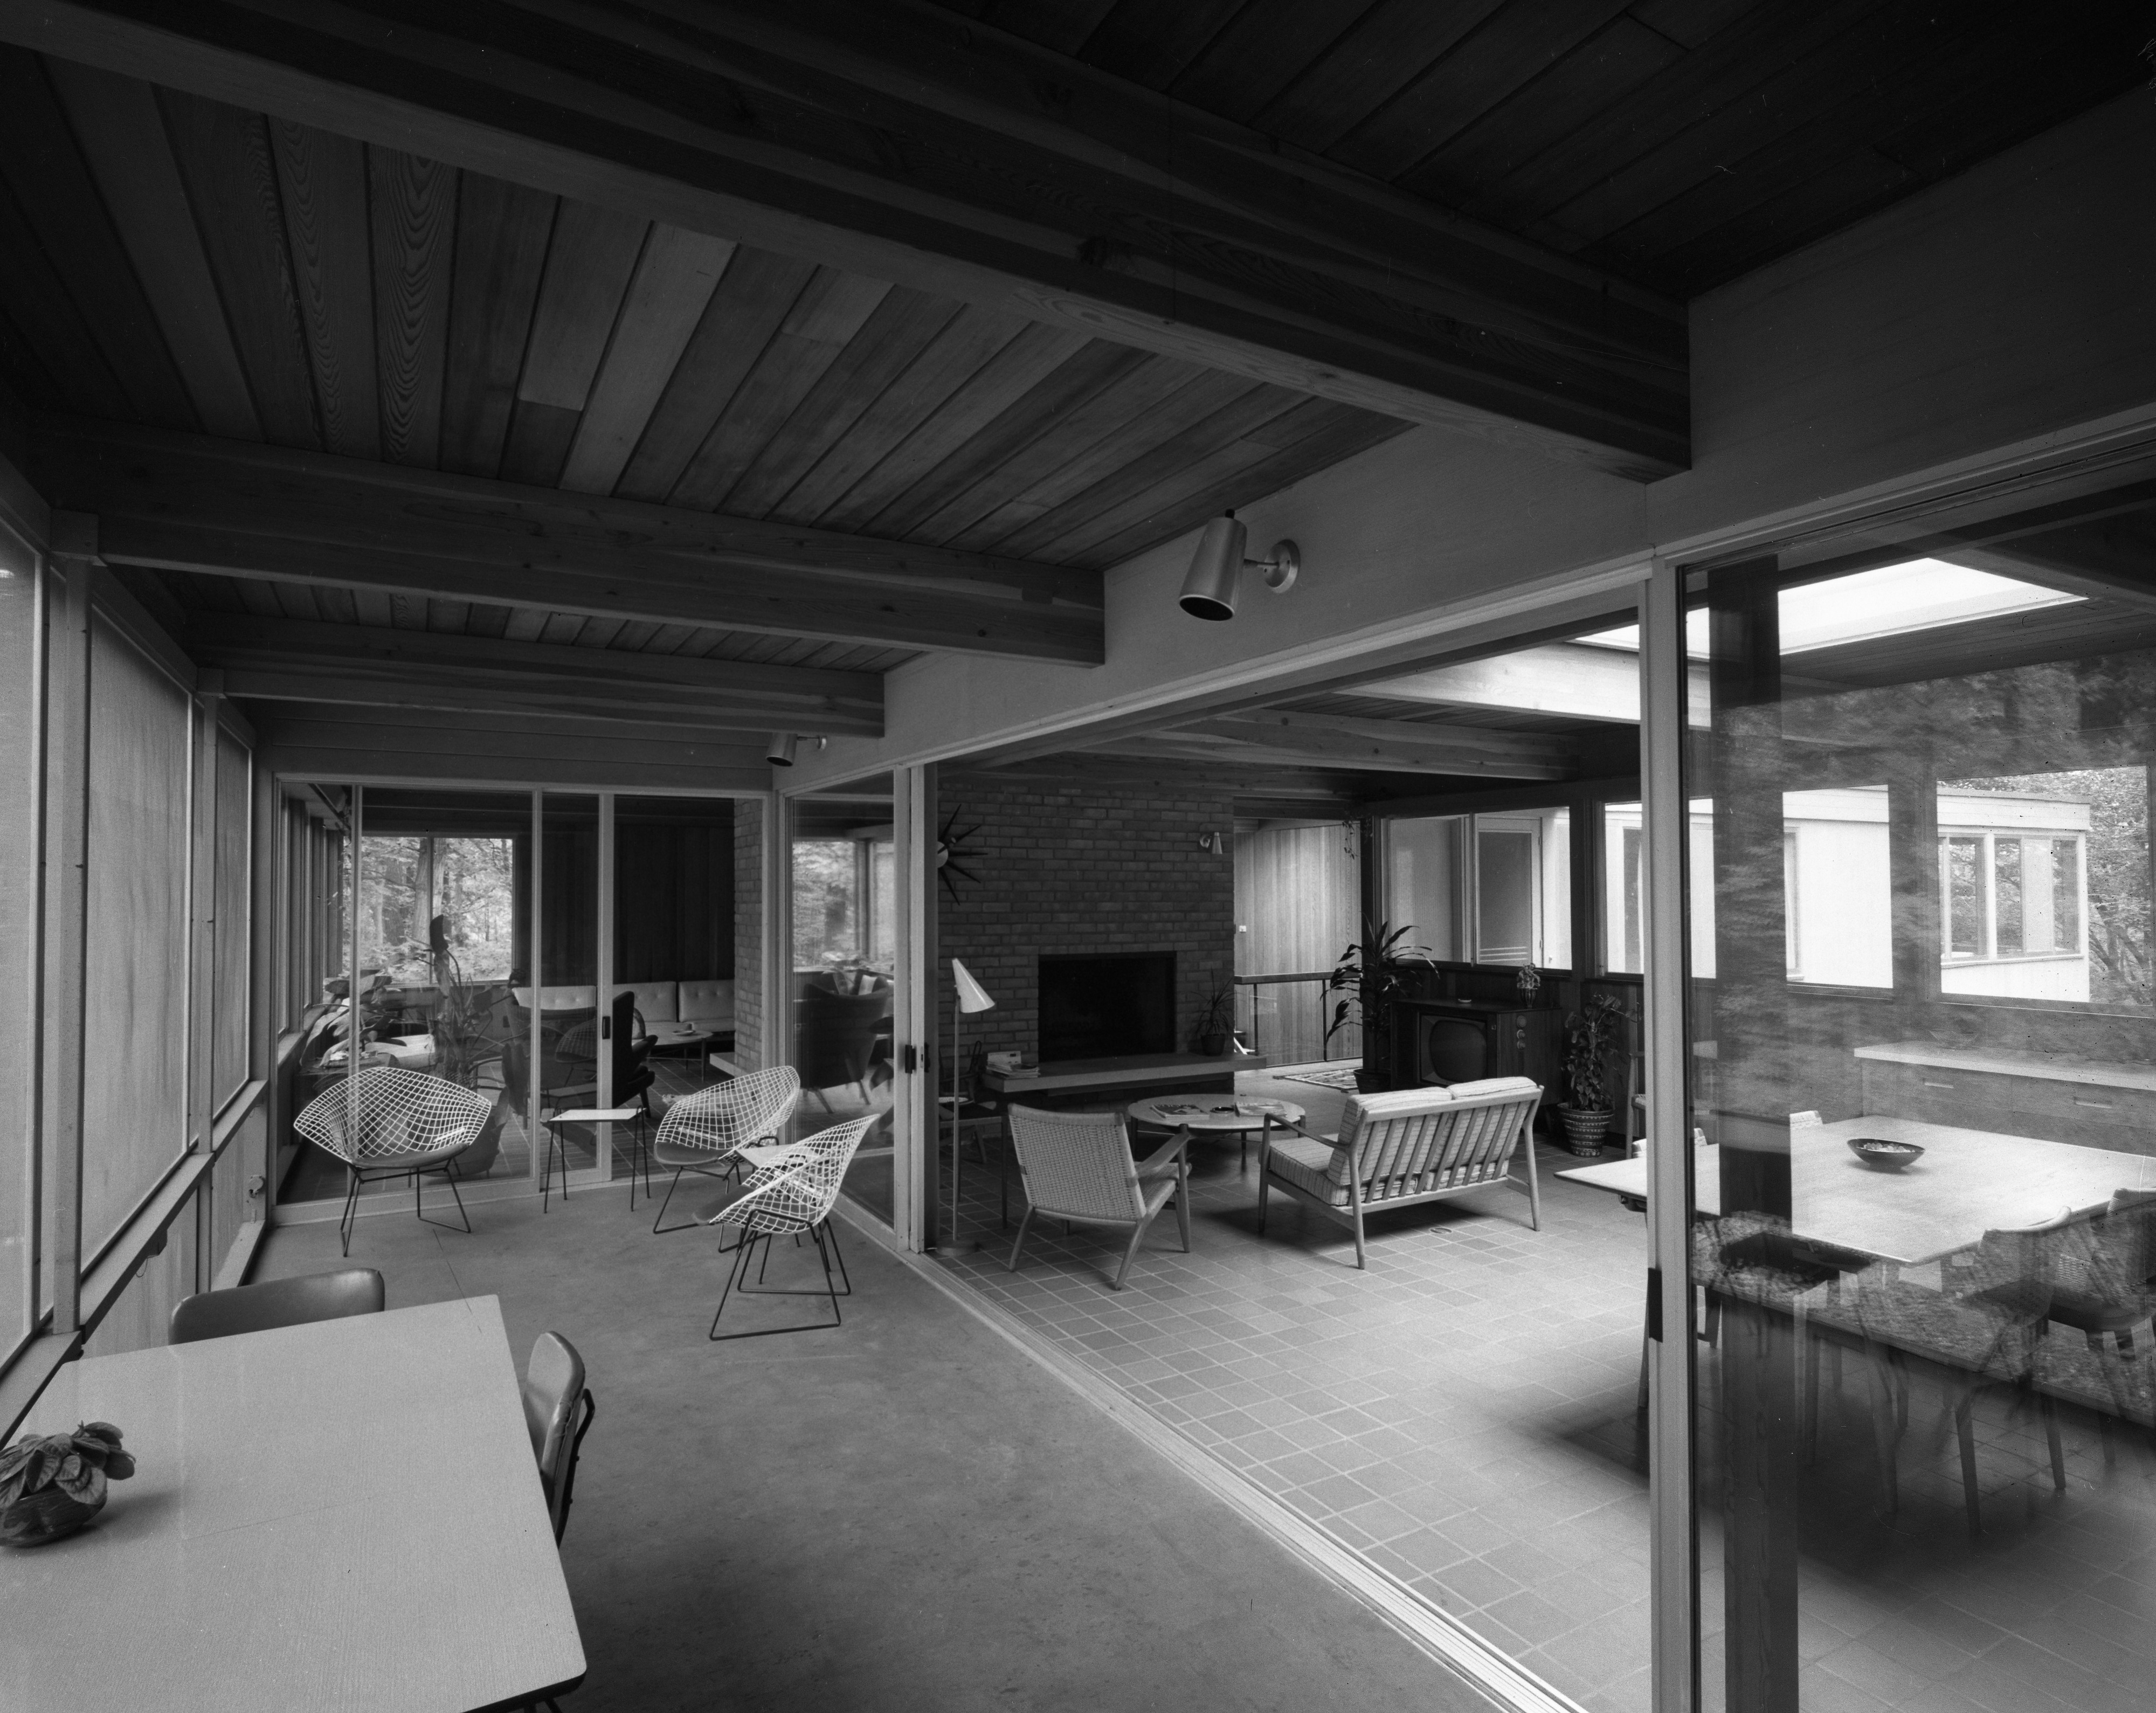 Sliding Doors Connect Rooms In Conn Contemporary Home At 200 Orchard Hill Drive, August 1960 image